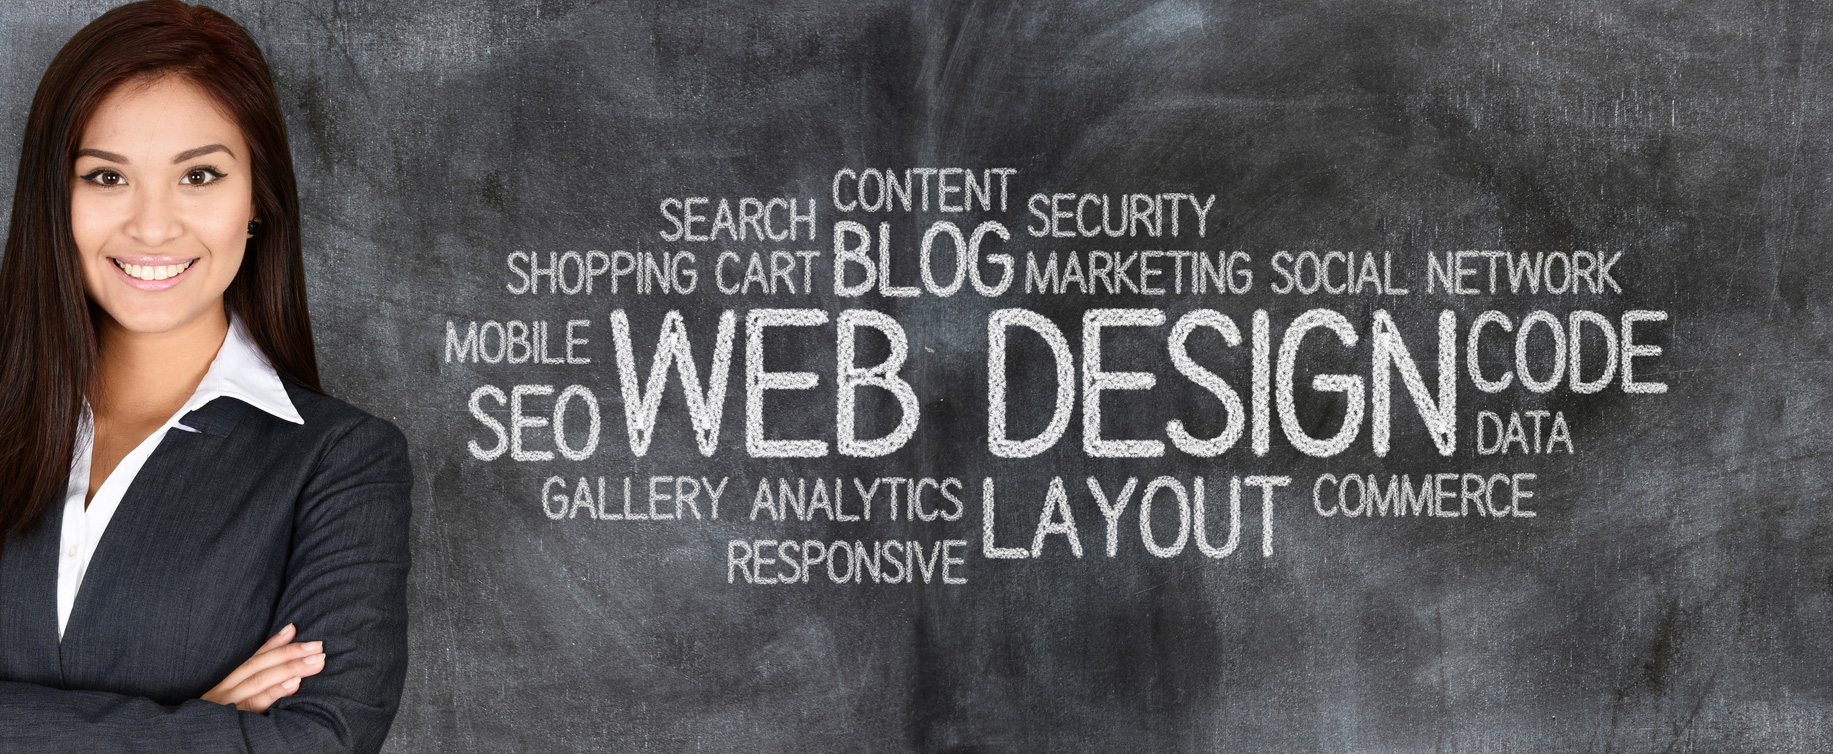 Web design & Application